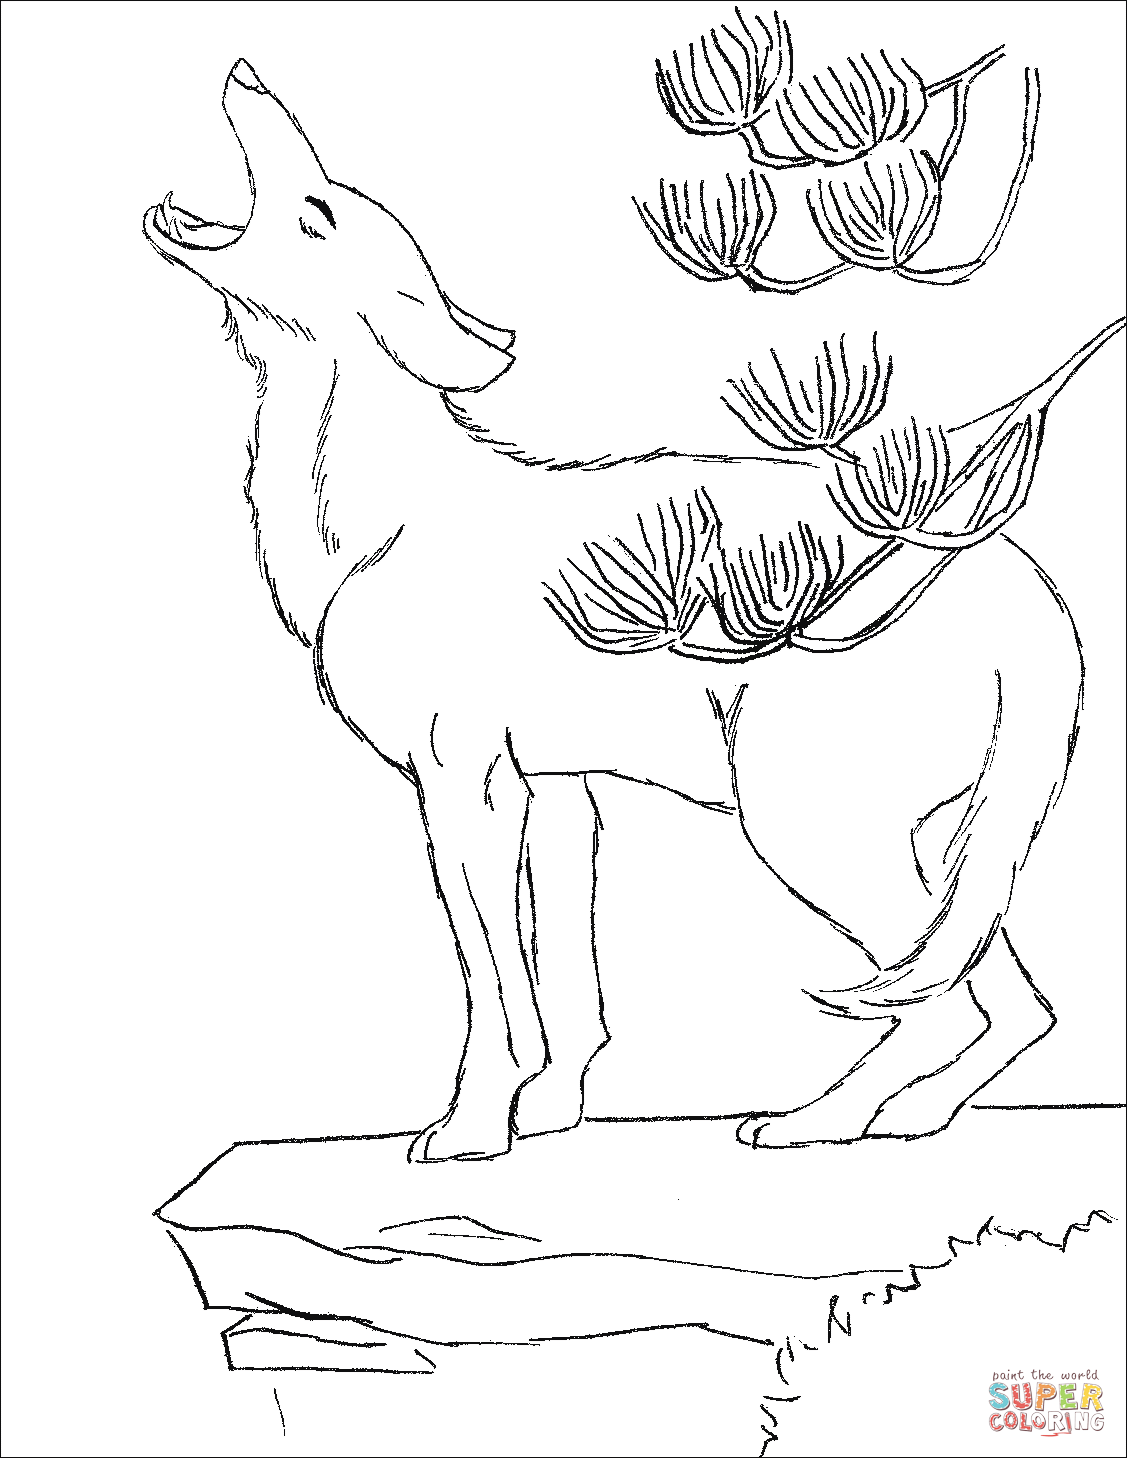 coyote coloring page download coyote coloring for free designlooter 2020 page coloring coyote